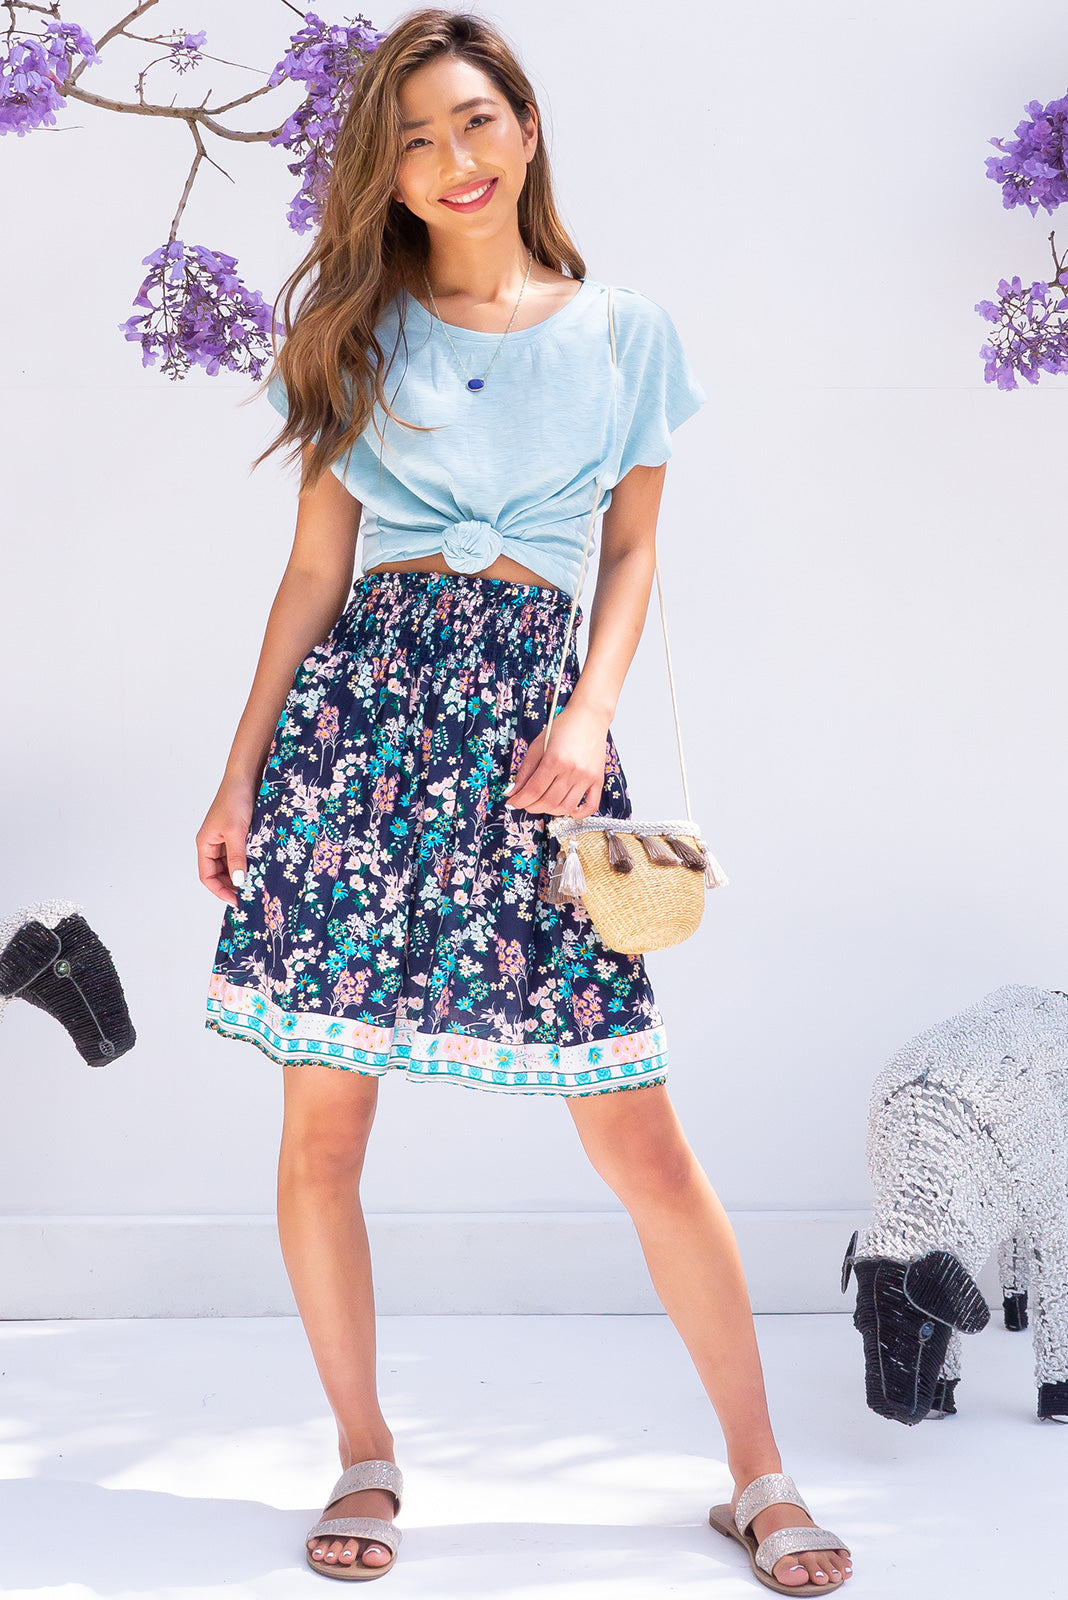 Spinel Wild Field Navy Skirt flirty short summer floral knee length skirt with side pockets, border print, shirred waist and made of rayon.